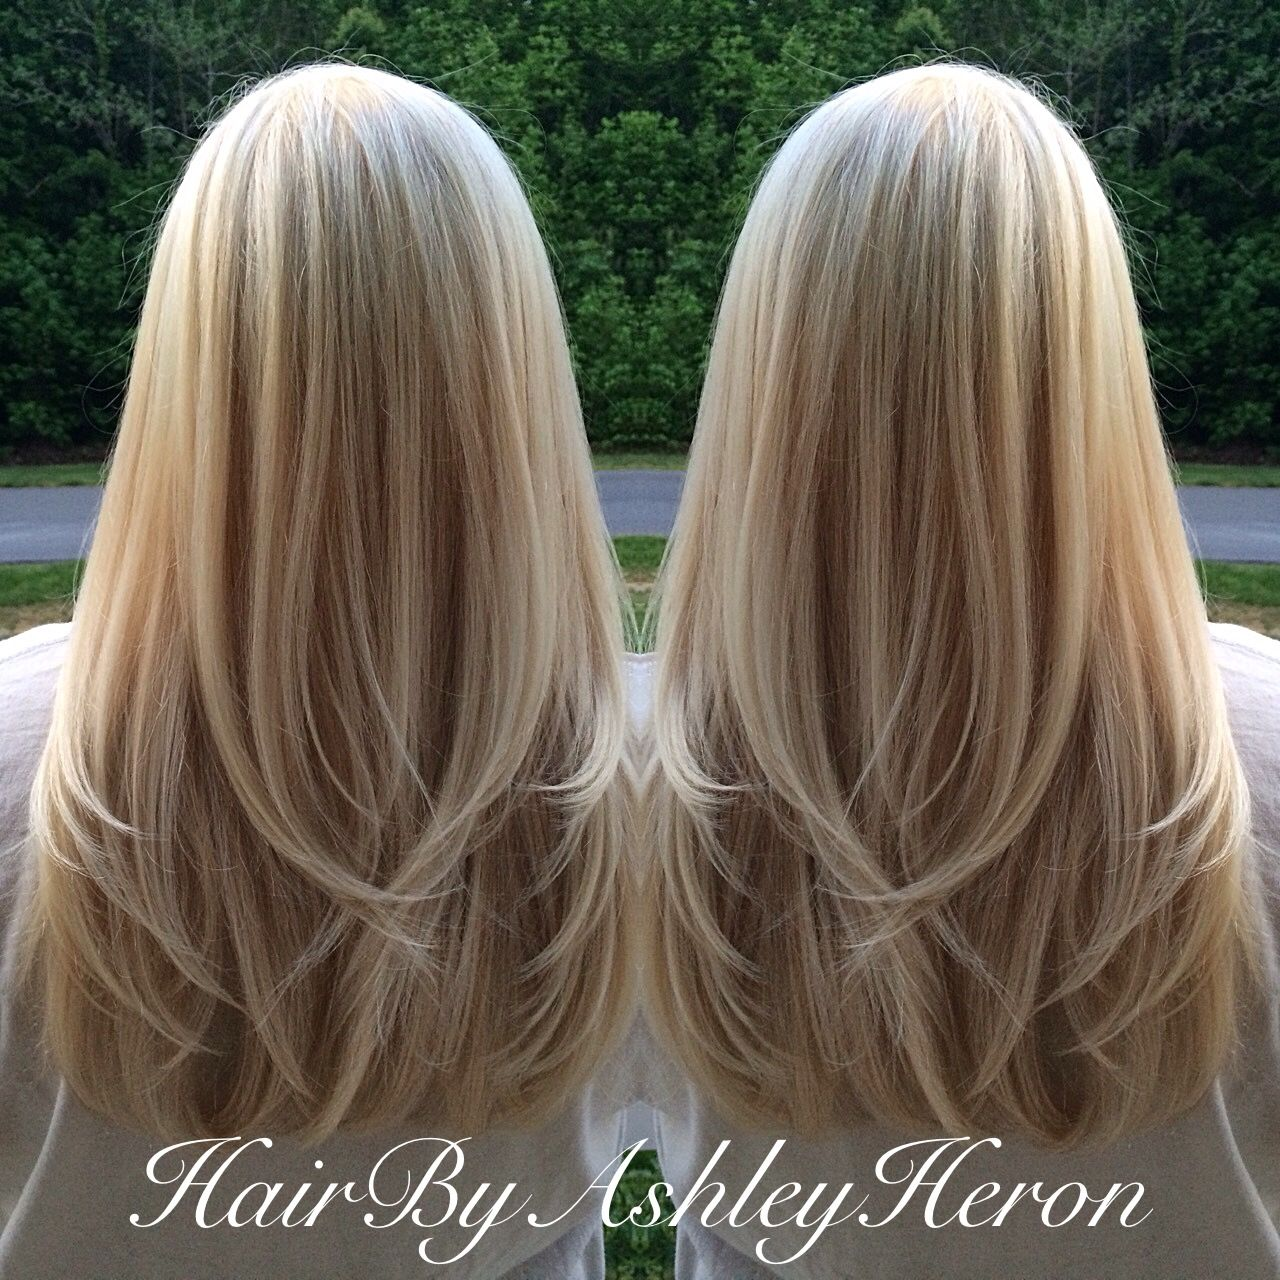 Highlight For Your Face Ultimate Fashion Trends For Girls Fashion S Girl Hair Styles Long Hair Styles Long Layered Hair